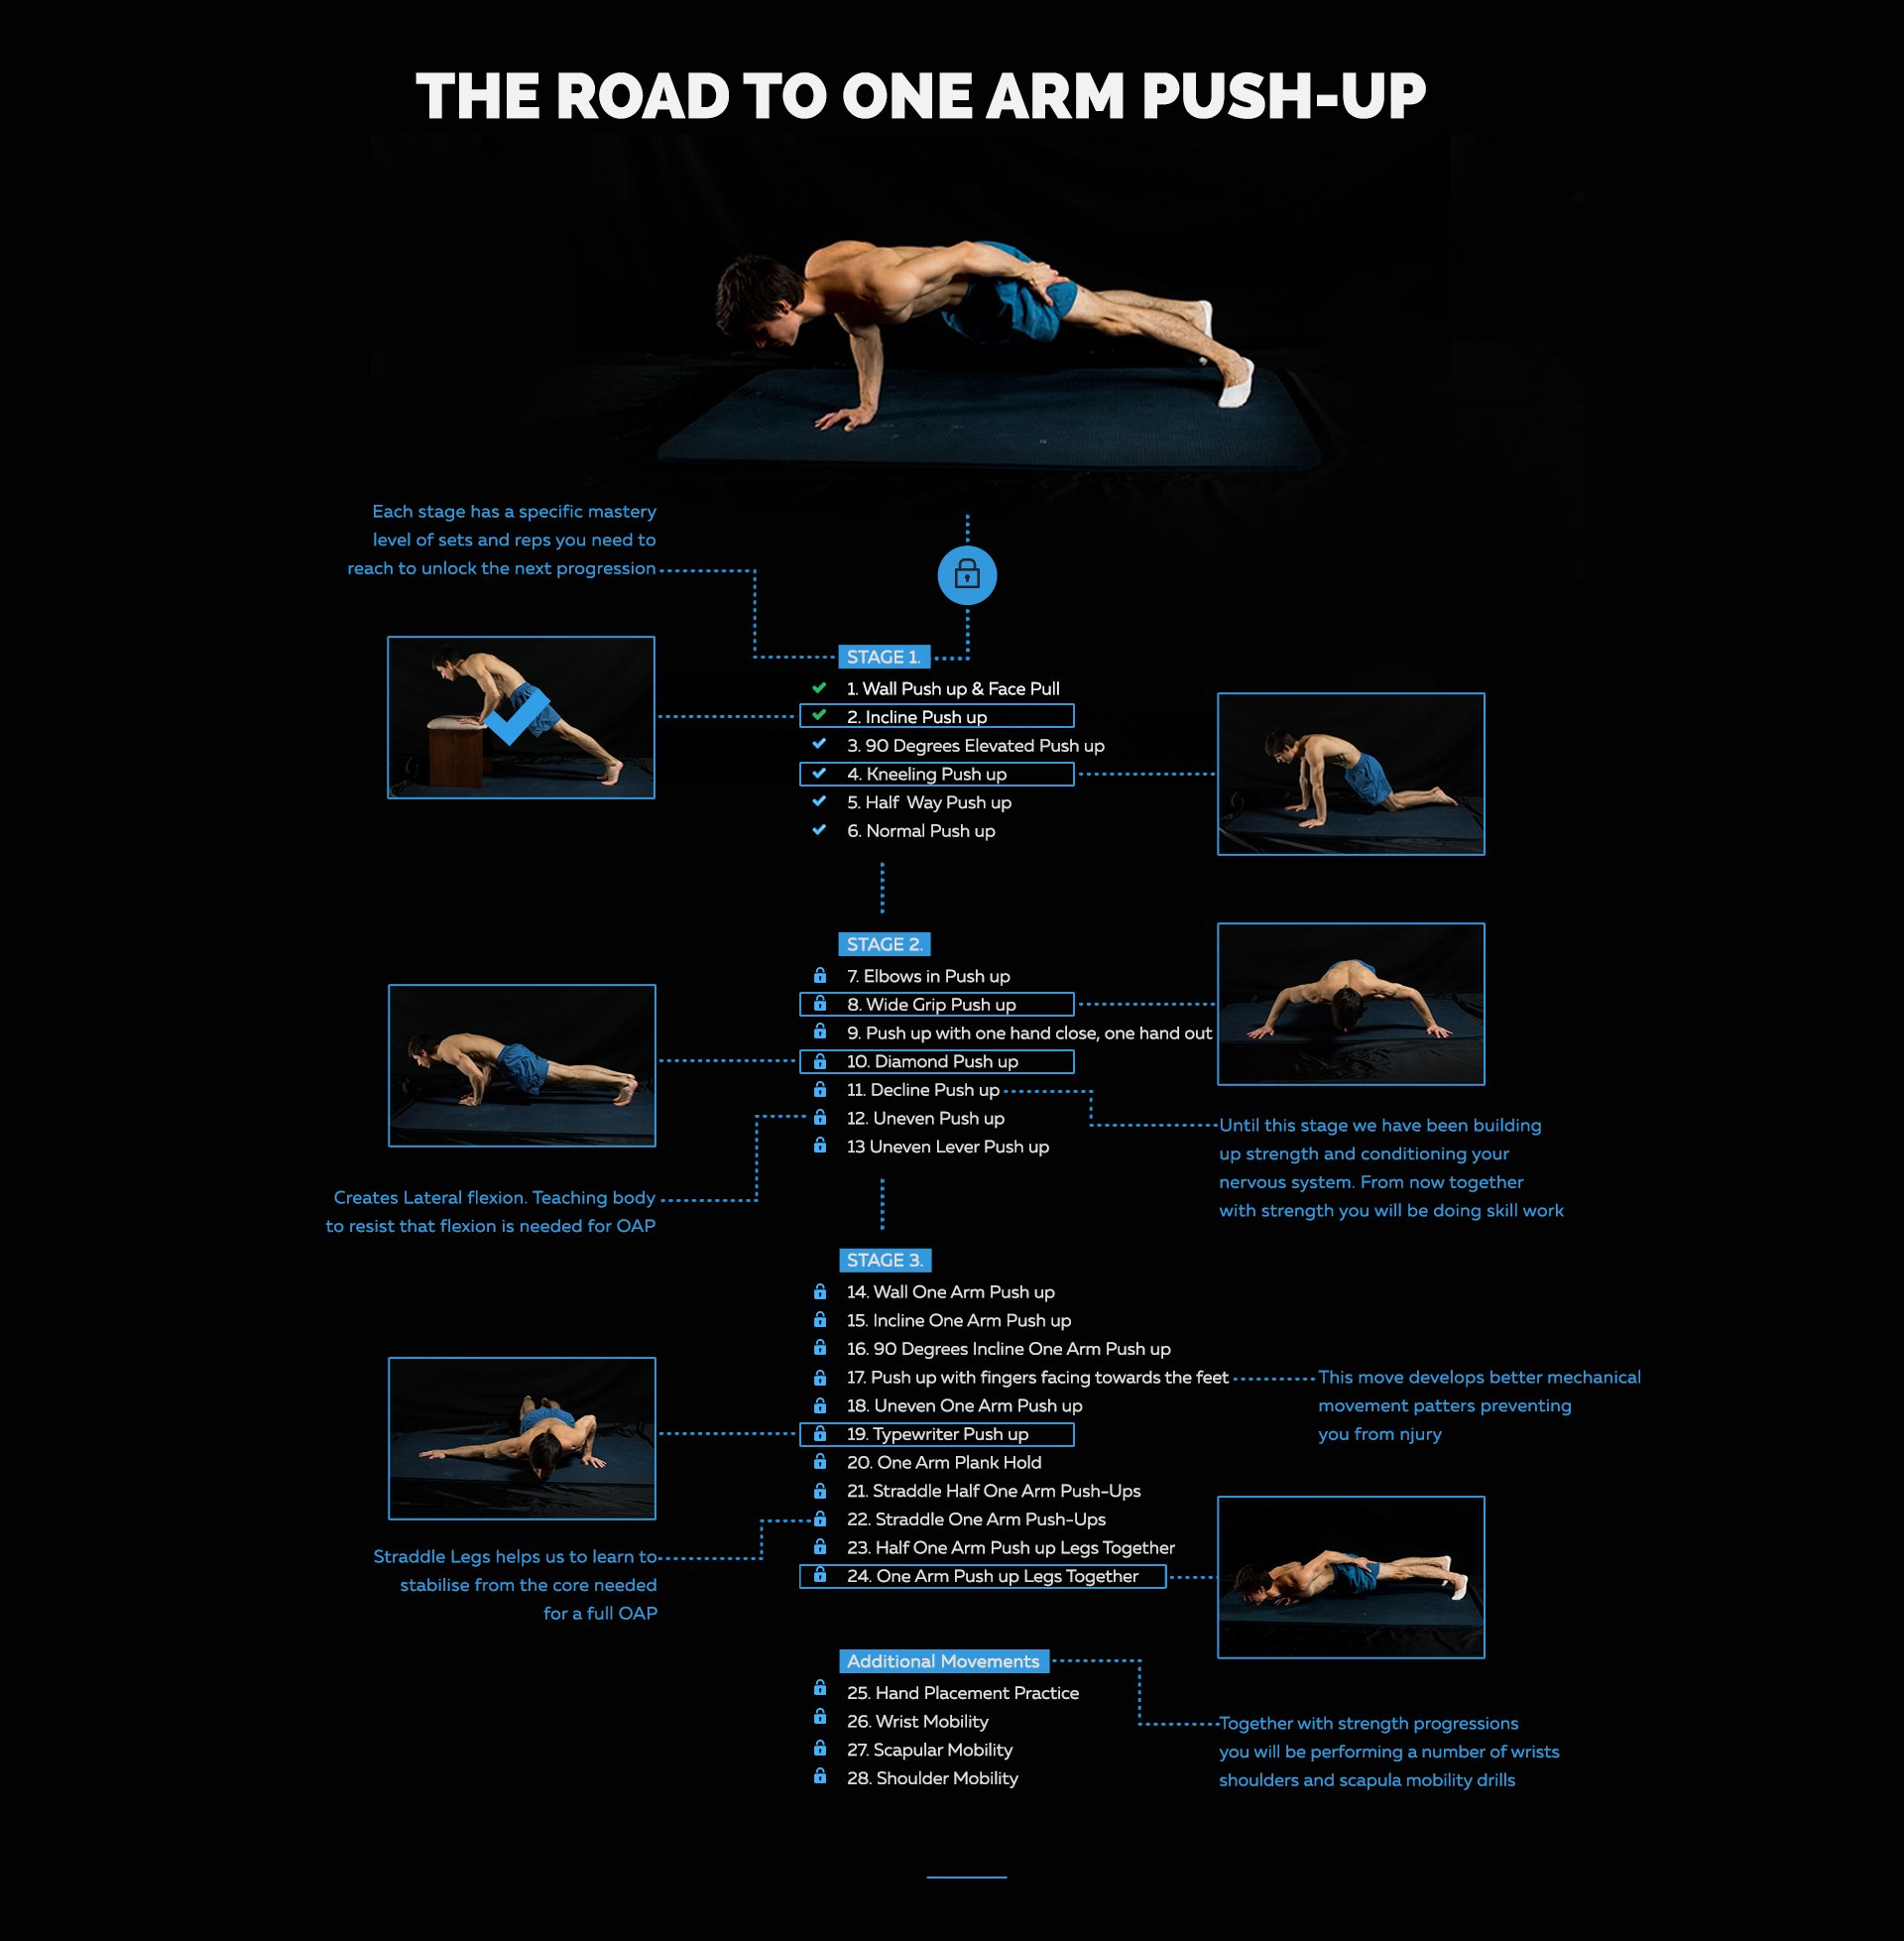 Calisthenics: Calisthenics Training For Everyone